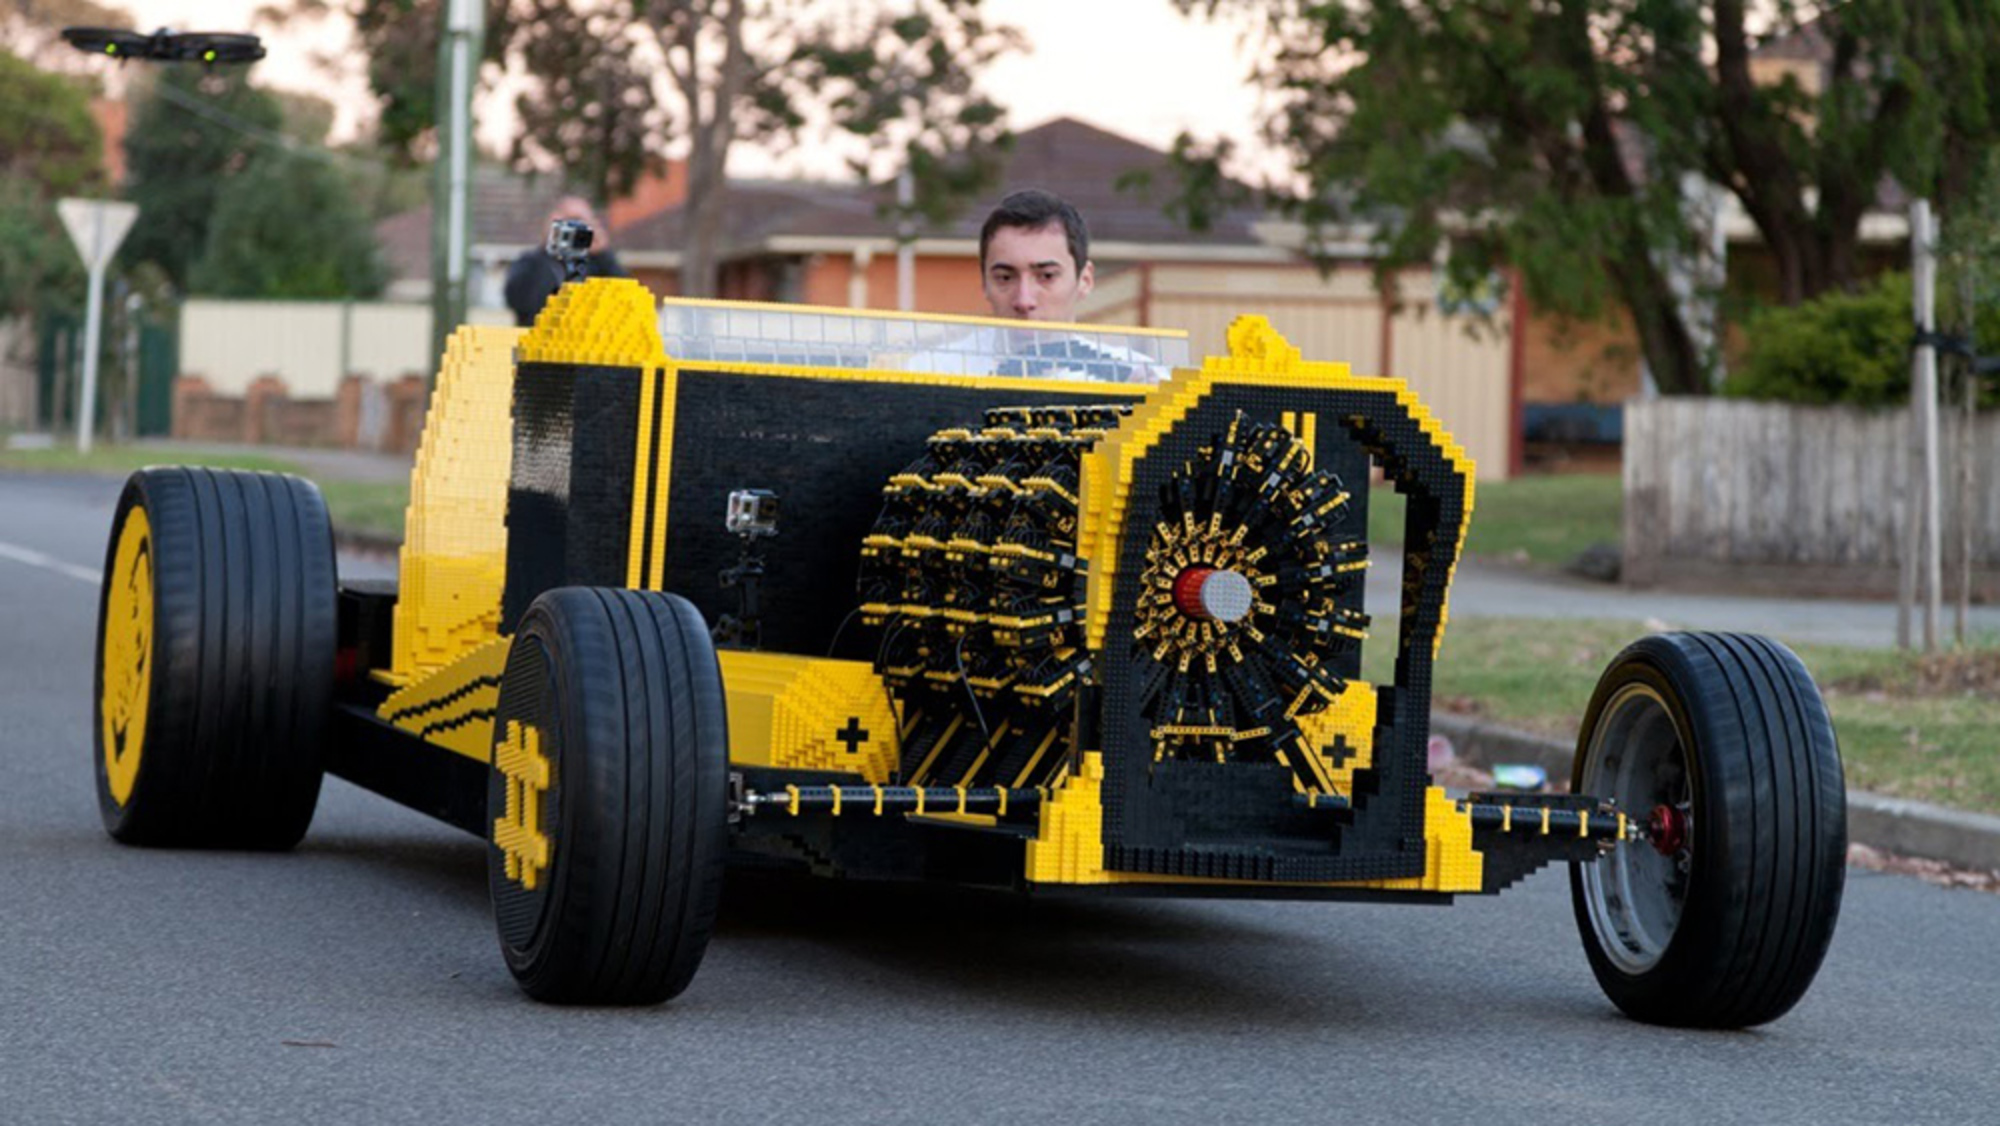 Why there's more than just novelty to one young inventor's air-powered Lego car